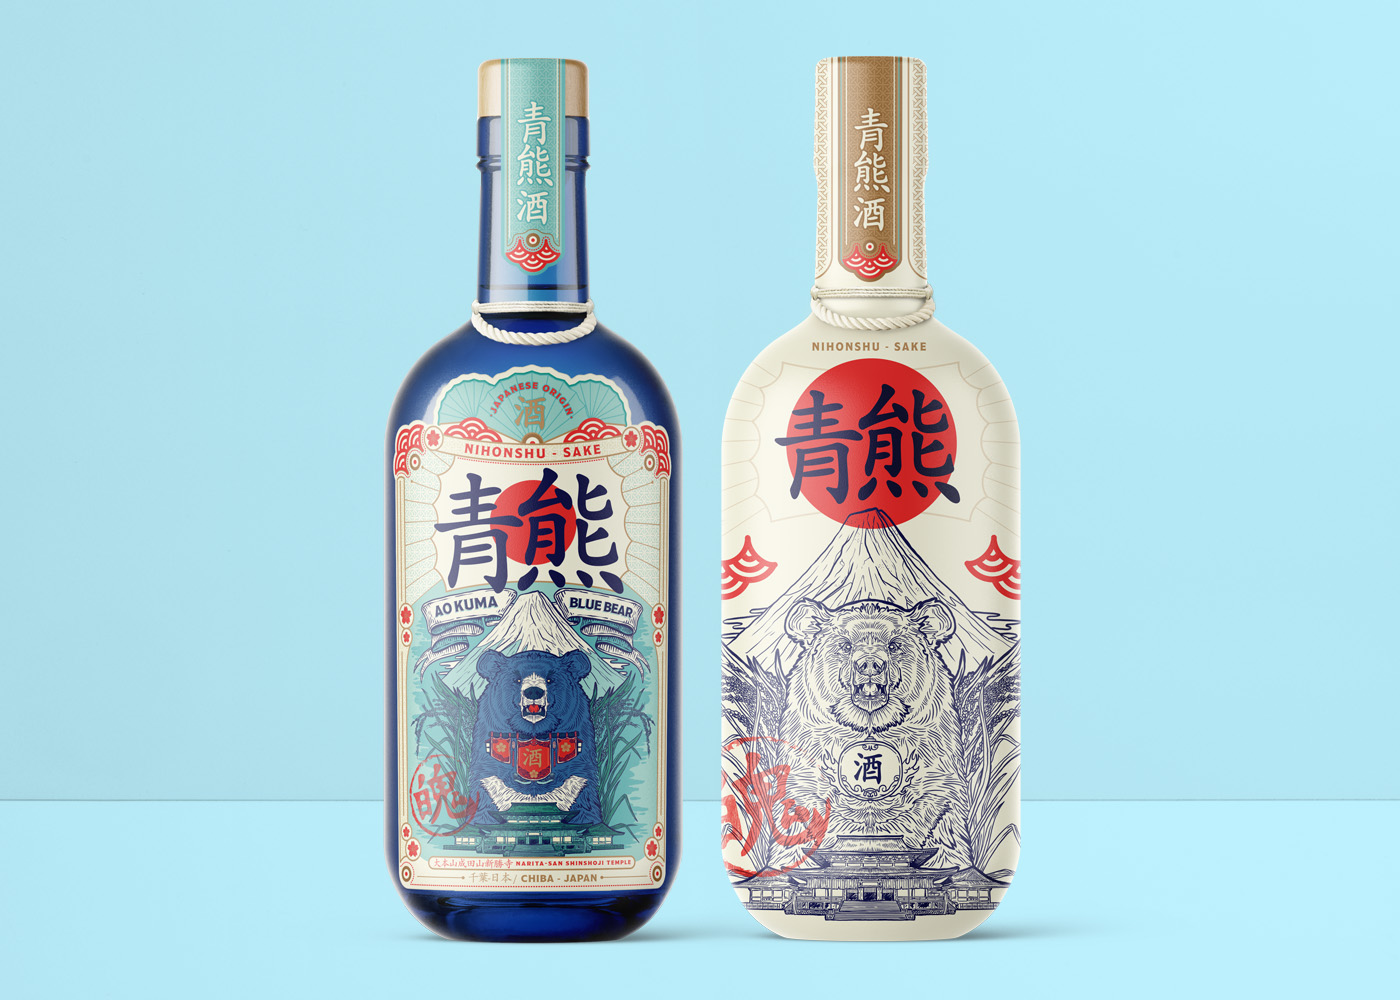 Concept Brand and Packaging Design for a Japanese Premium Sake